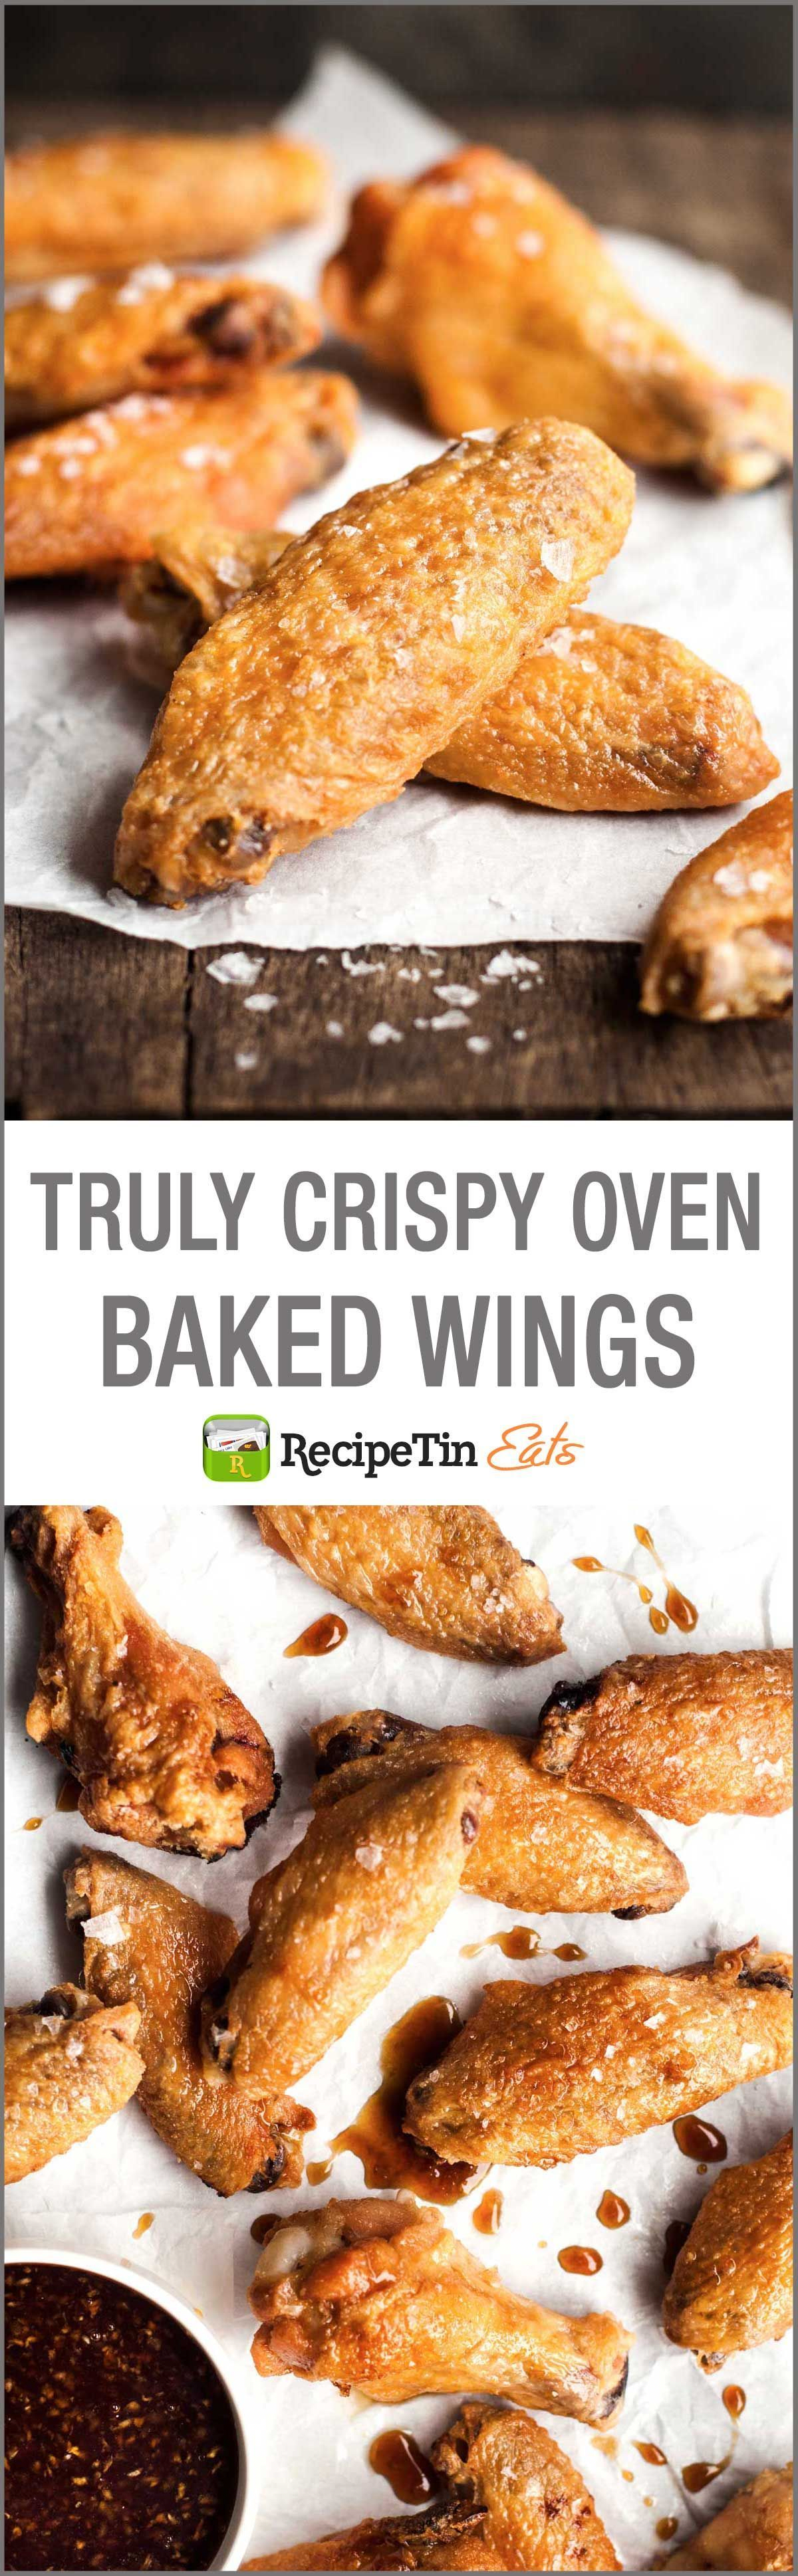 Crispy Oven Baked Chicken Wings Truly Crispy Oven Baked Wings Oven Baked Chicken Wings Truly Crispy Oven Baked Wings | These come out so crispy, it's hard to believe they aren't fried. So easy - a Cook's Illustrated technique.Truly Crispy Oven Baked Wings | These come out so crispy, it's hard to believe they aren't fried. So easy - a Cook's Illustrated technique.Crispy Oven Baked Chicken Wings Truly Crispy Oven Ba...